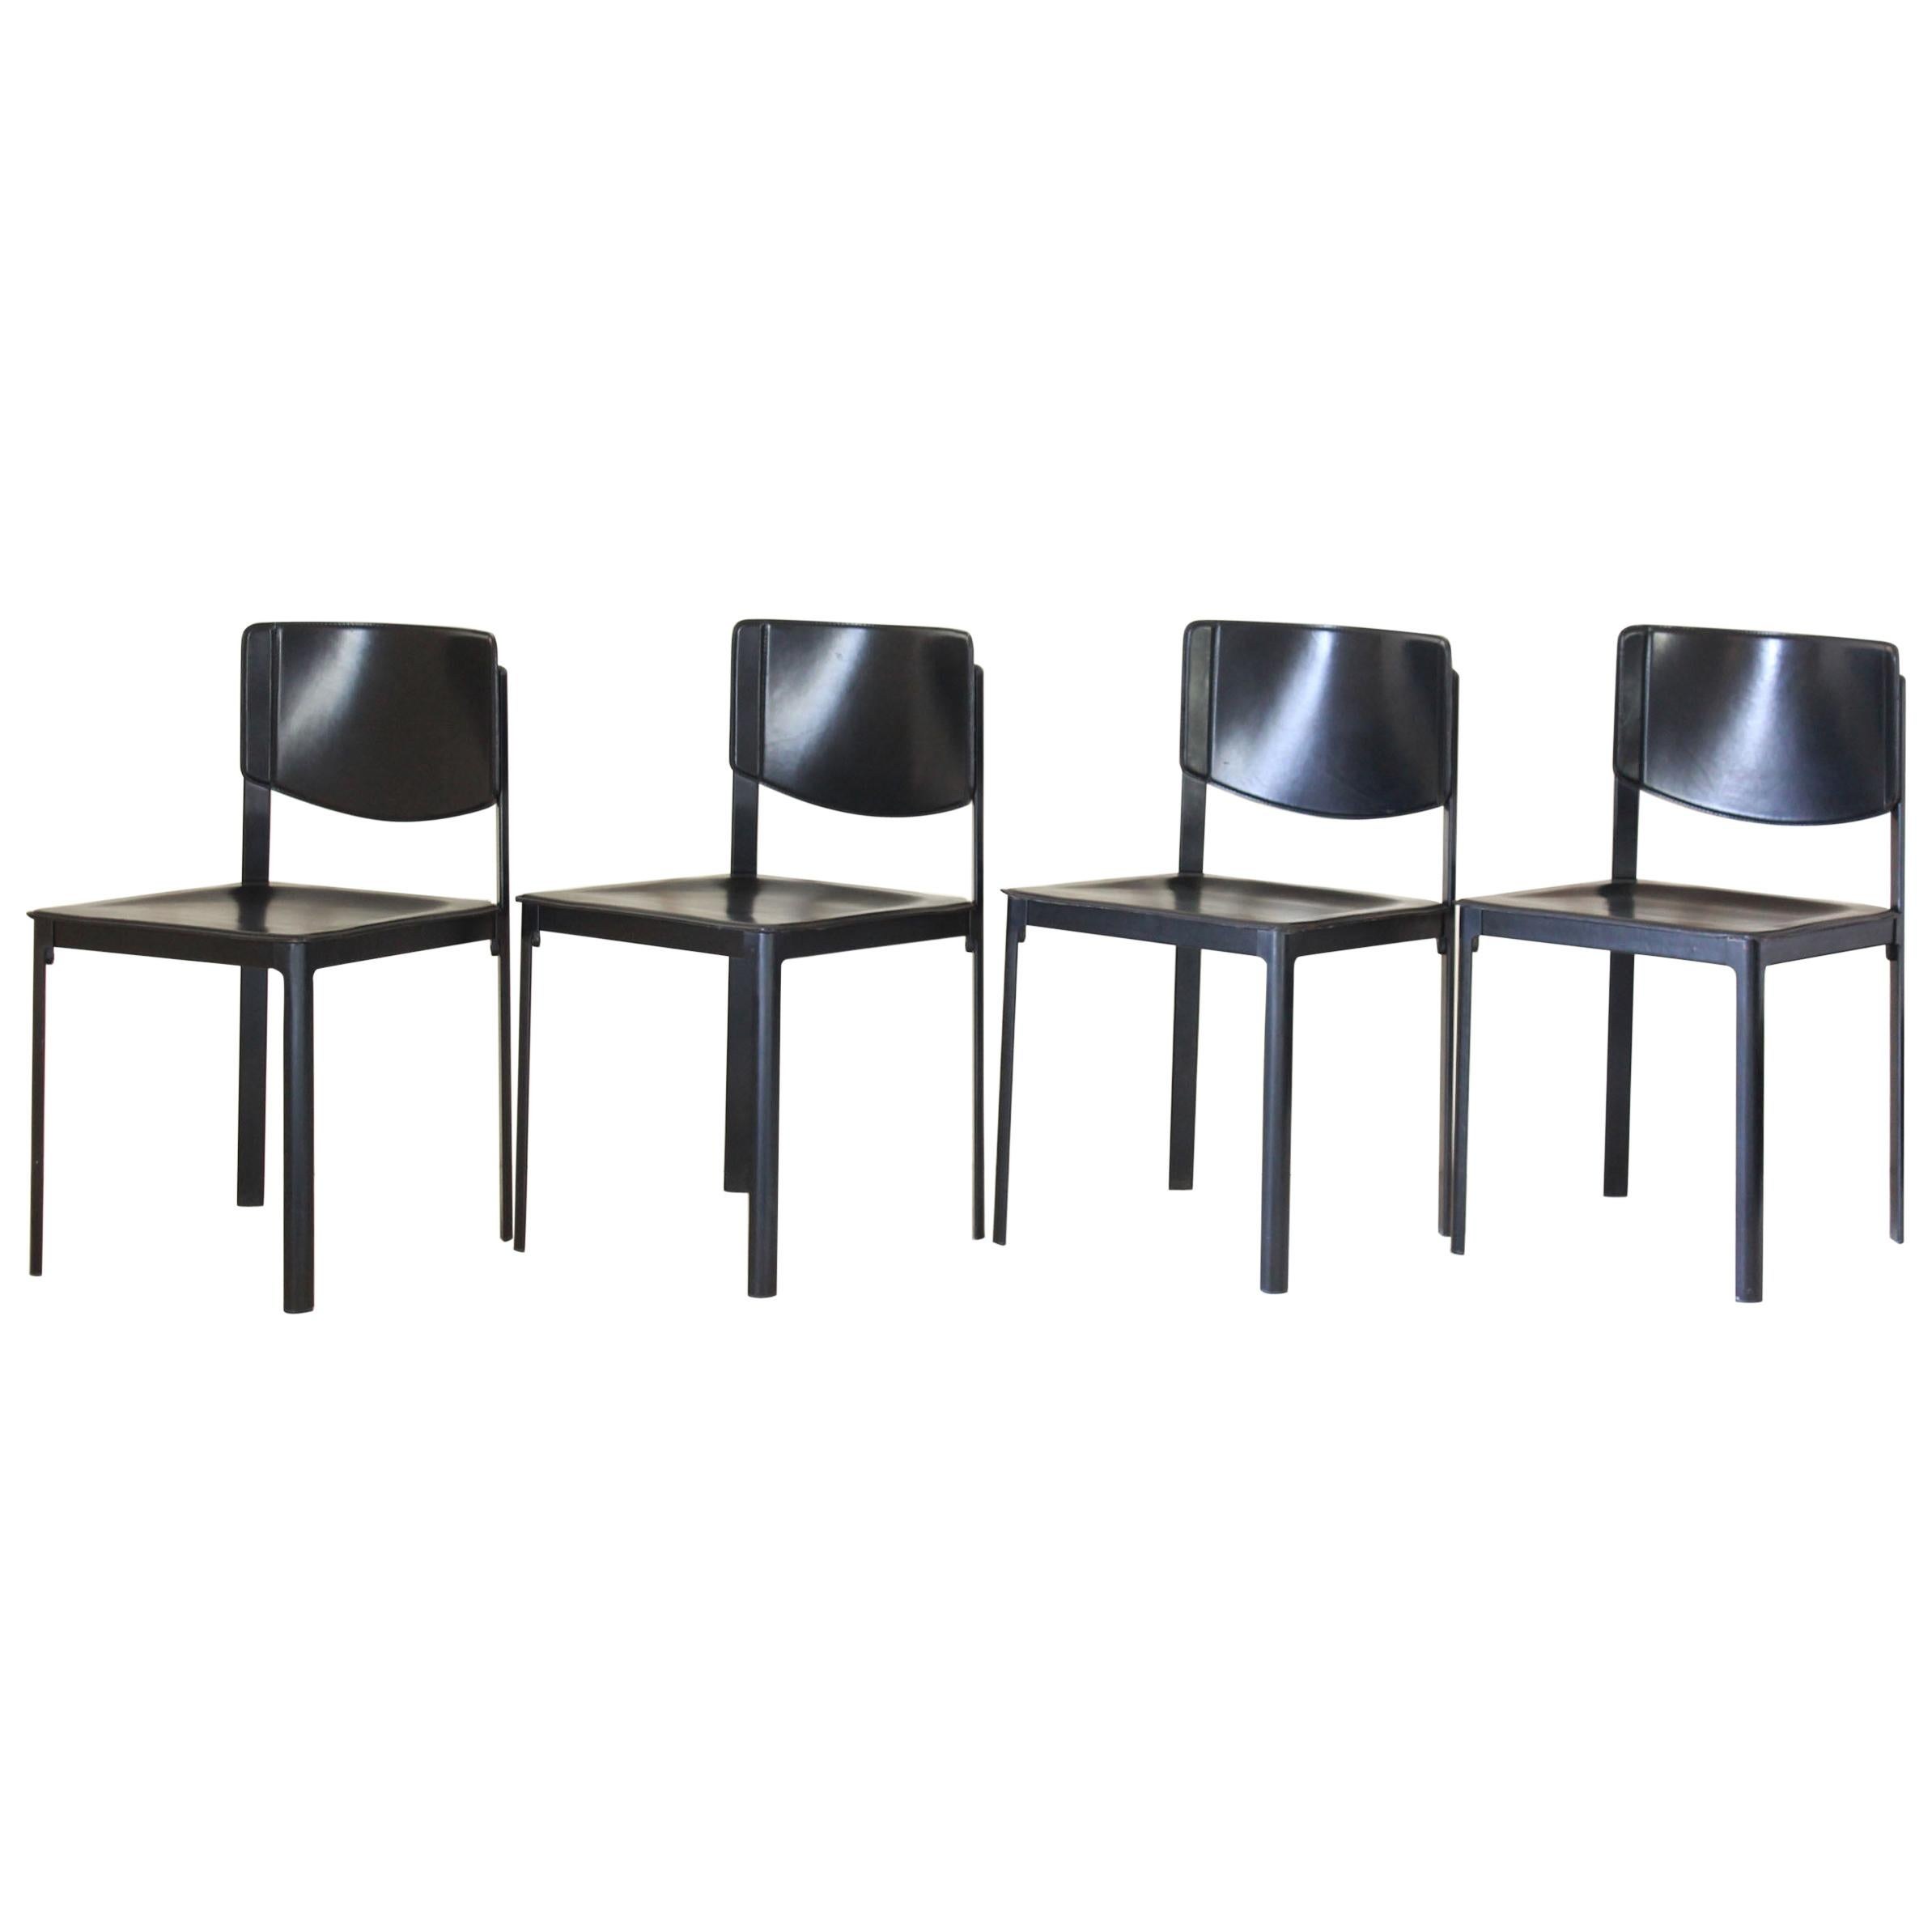 1980s Postmodern vintage Black leather Dining Chairs by Matteo Grassi